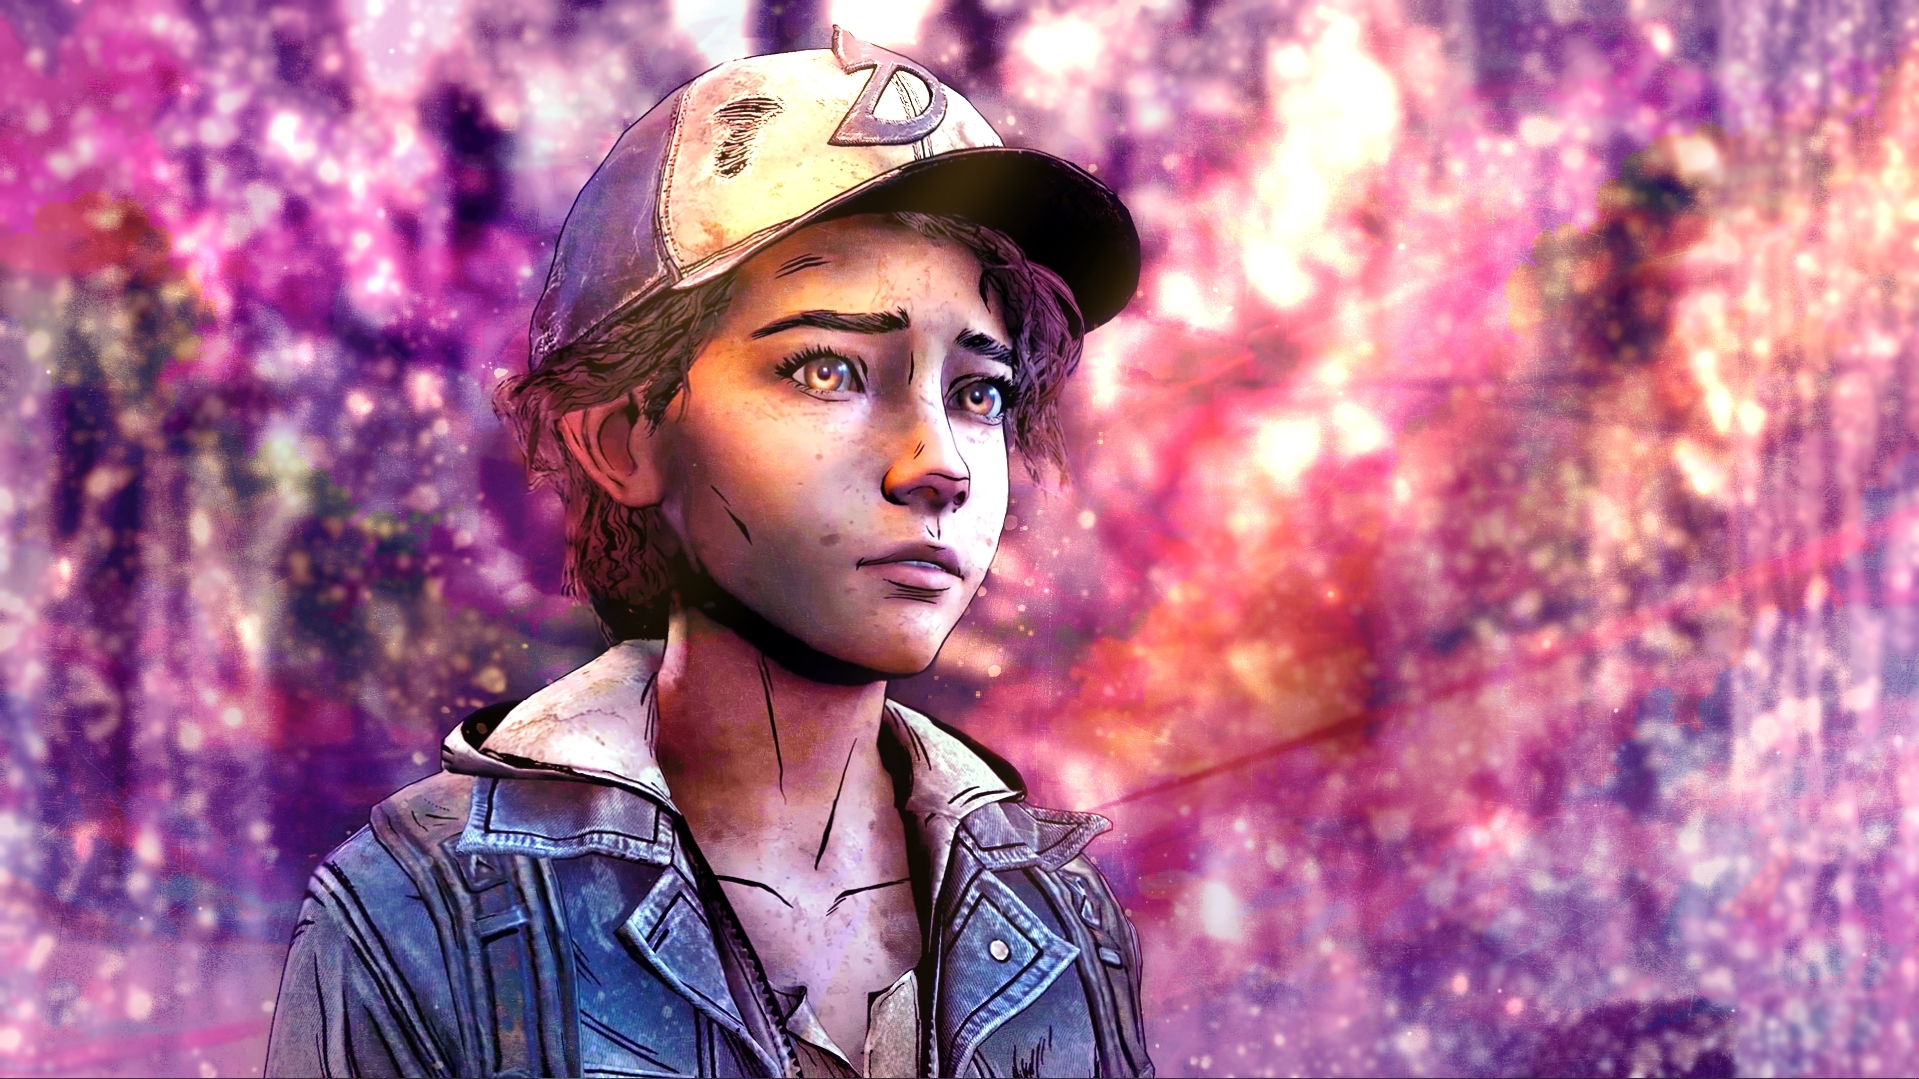 Clementine   The Walking Dead   games live wallpaper 17933 1919x1079